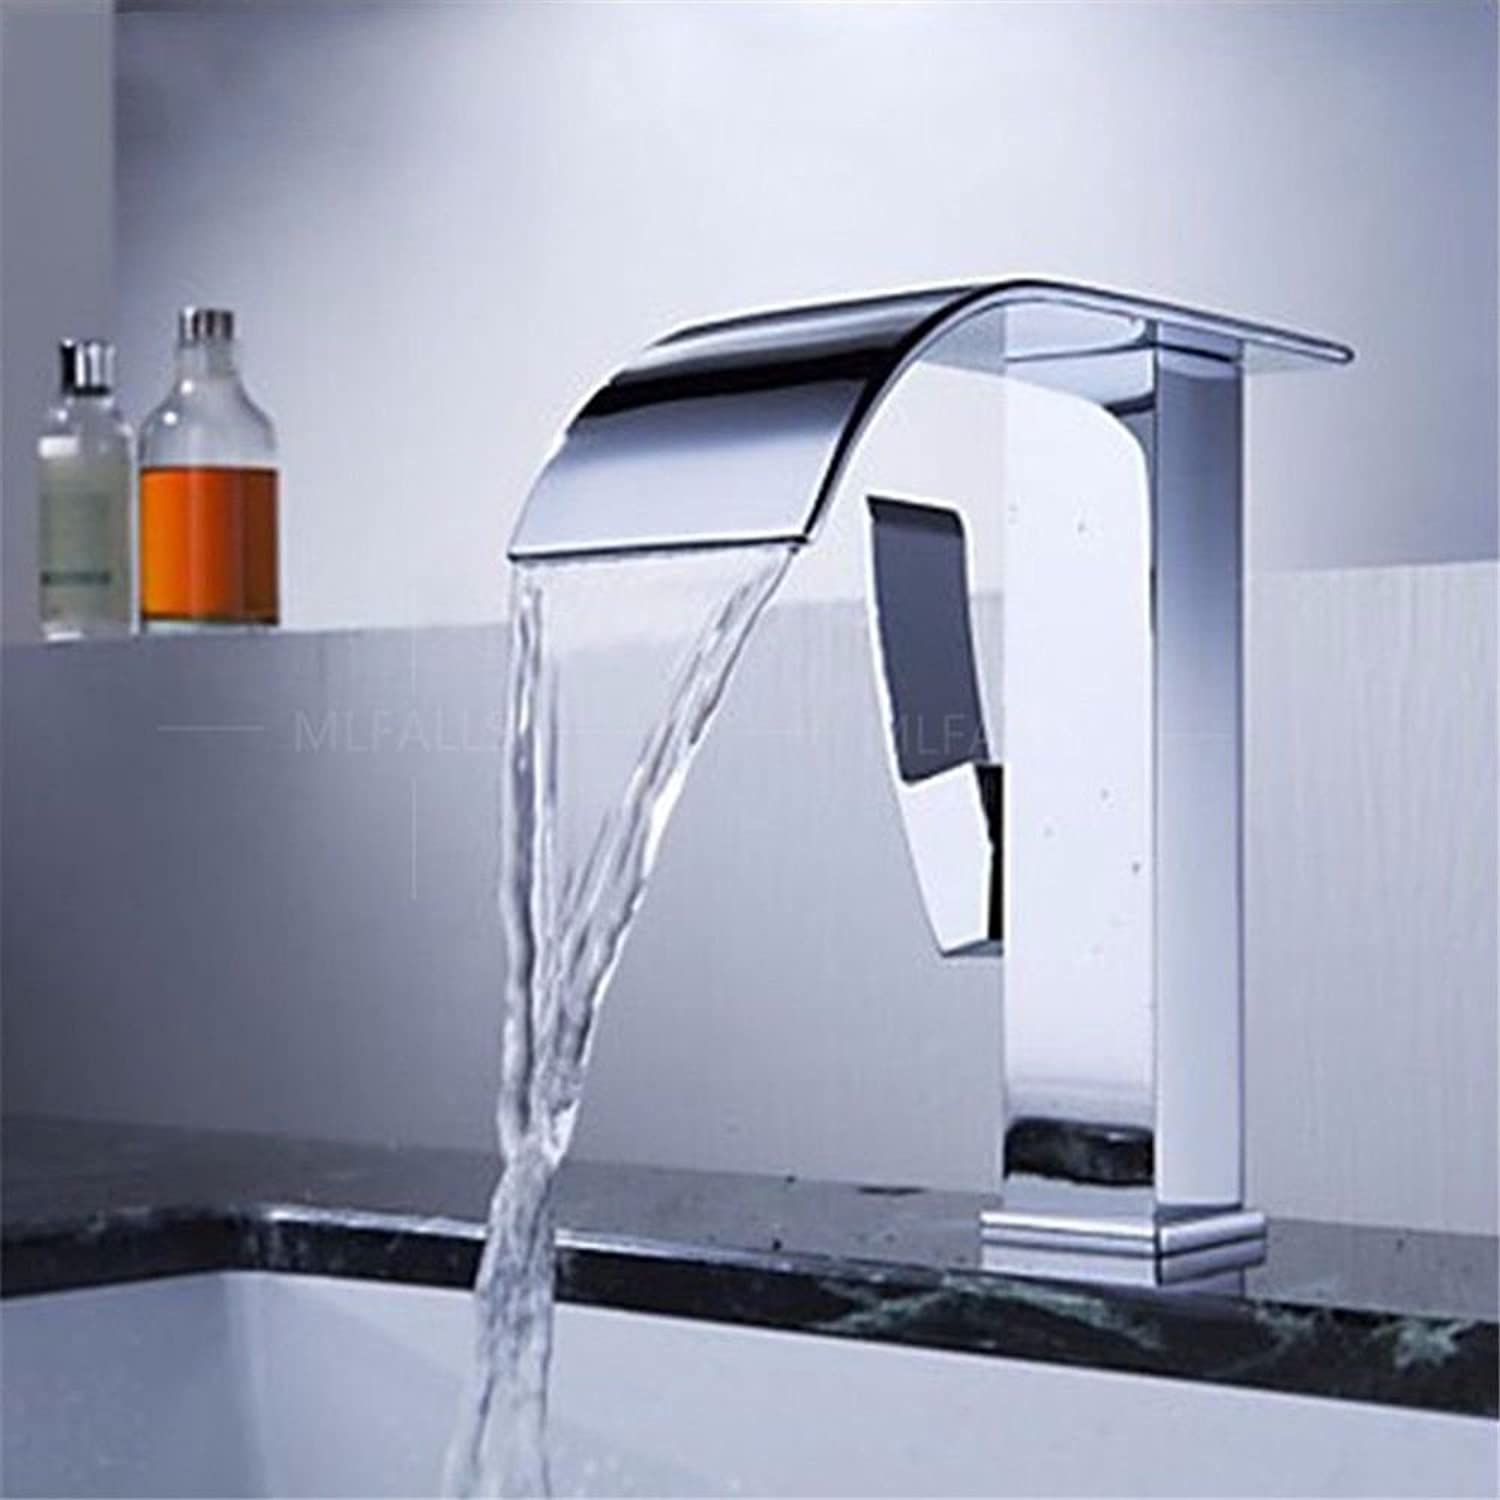 Lpophy Bathroom Sink Mixer Taps Faucet Bath Waterfall Cold and Hot Water Tap for Washroom Bathroom and Kitchen Hot and Cold Chrome Waterfall